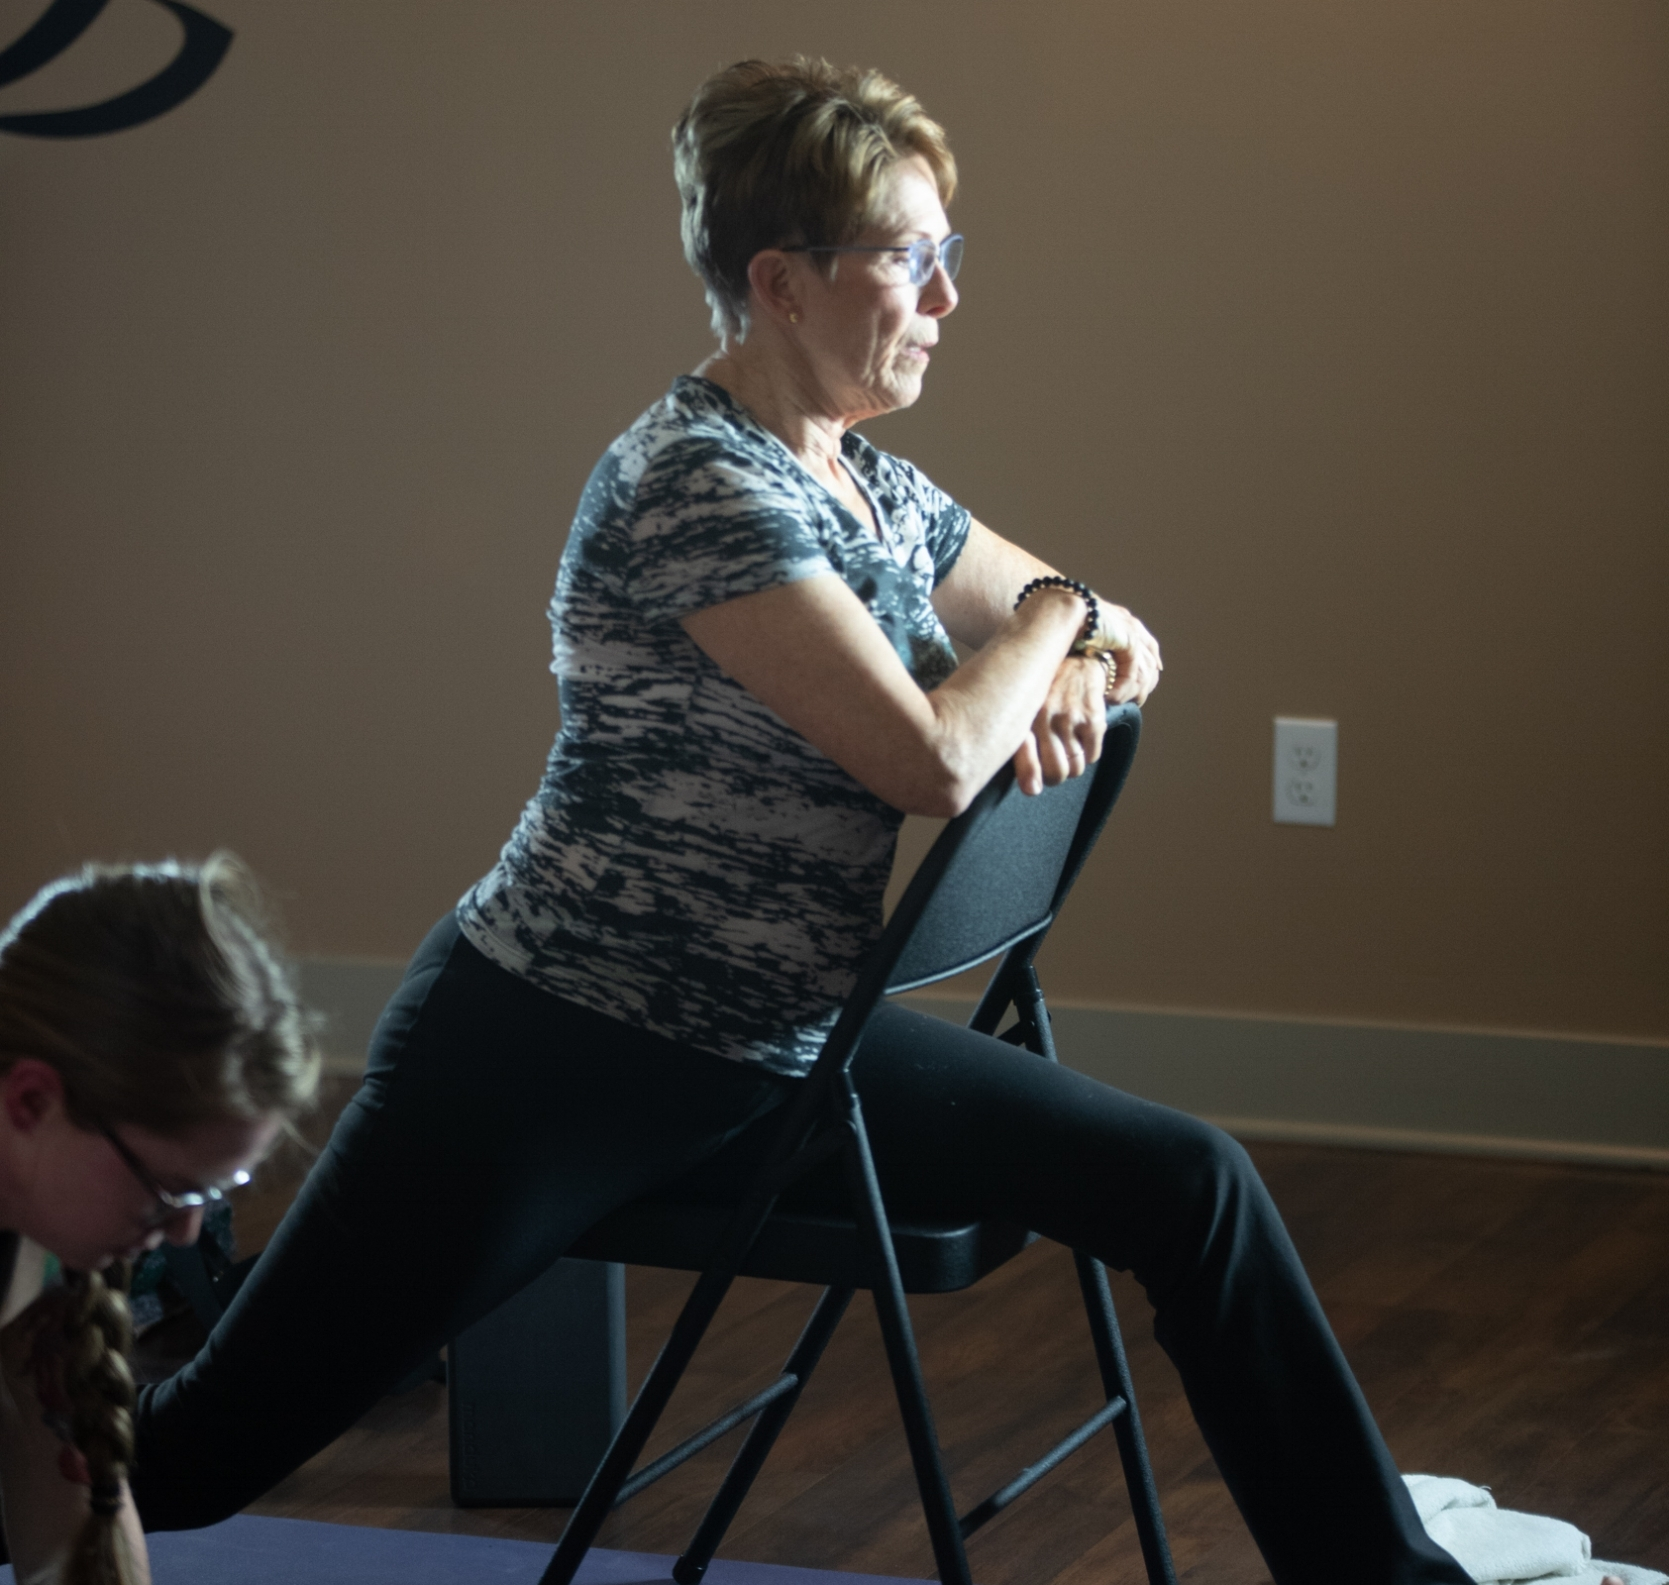 Adapted / Gentle Yoga - An instruction-heavy class that moves at a gentle pace and incorporates props and modifications to adapt to your needs – chairs, blocks, bolsters, blankets, and straps and all!This class is accessible and adapts to anyone with a physical restriction or contraindication. Appropriate for all levels including first-timers and those with limitations.For adults or kids 15 and up.